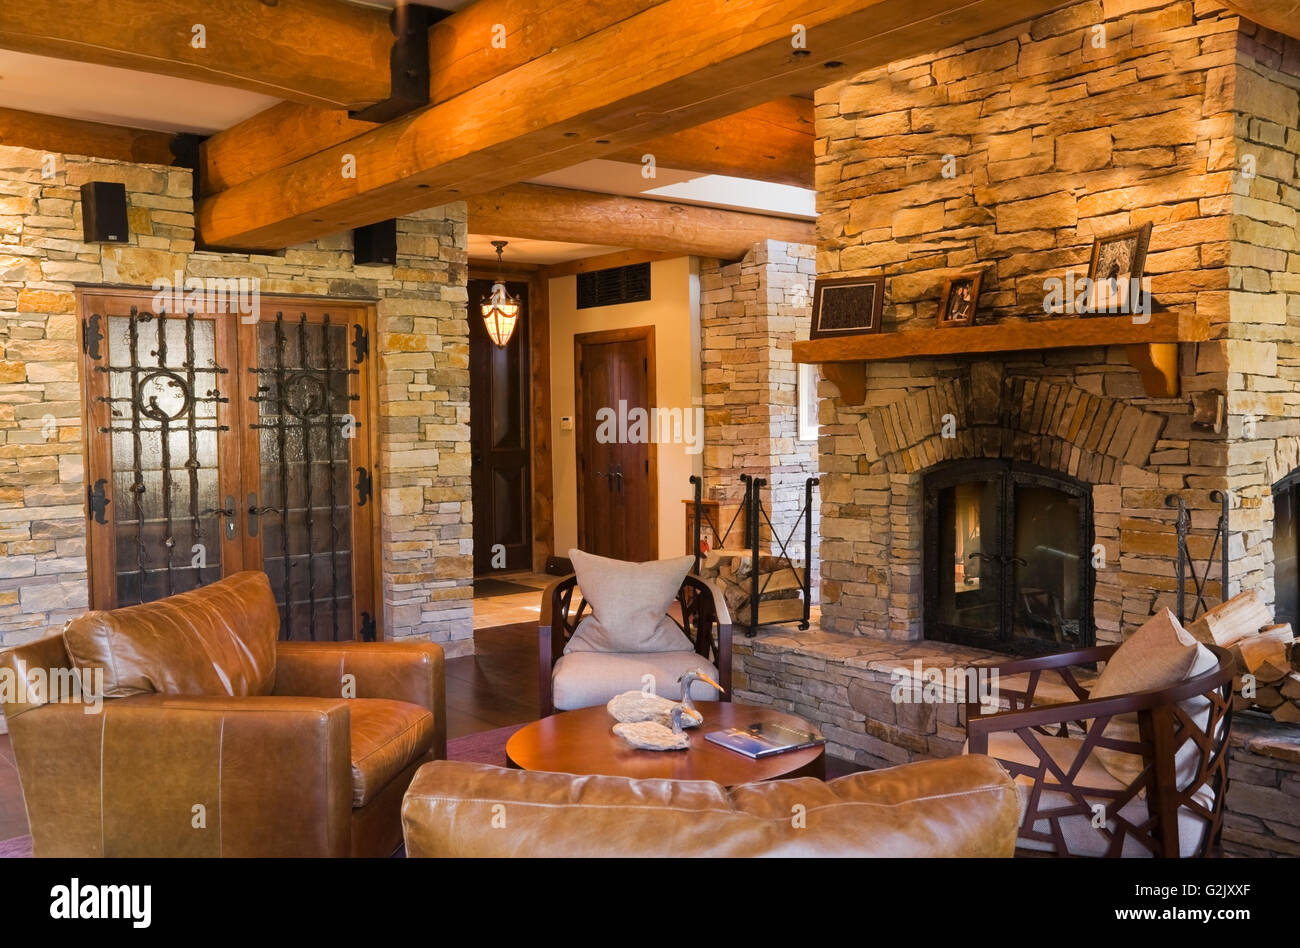 Leather chairs next four sided natural stone fireplace wine cellar french doors natural stone contour in living room inside a